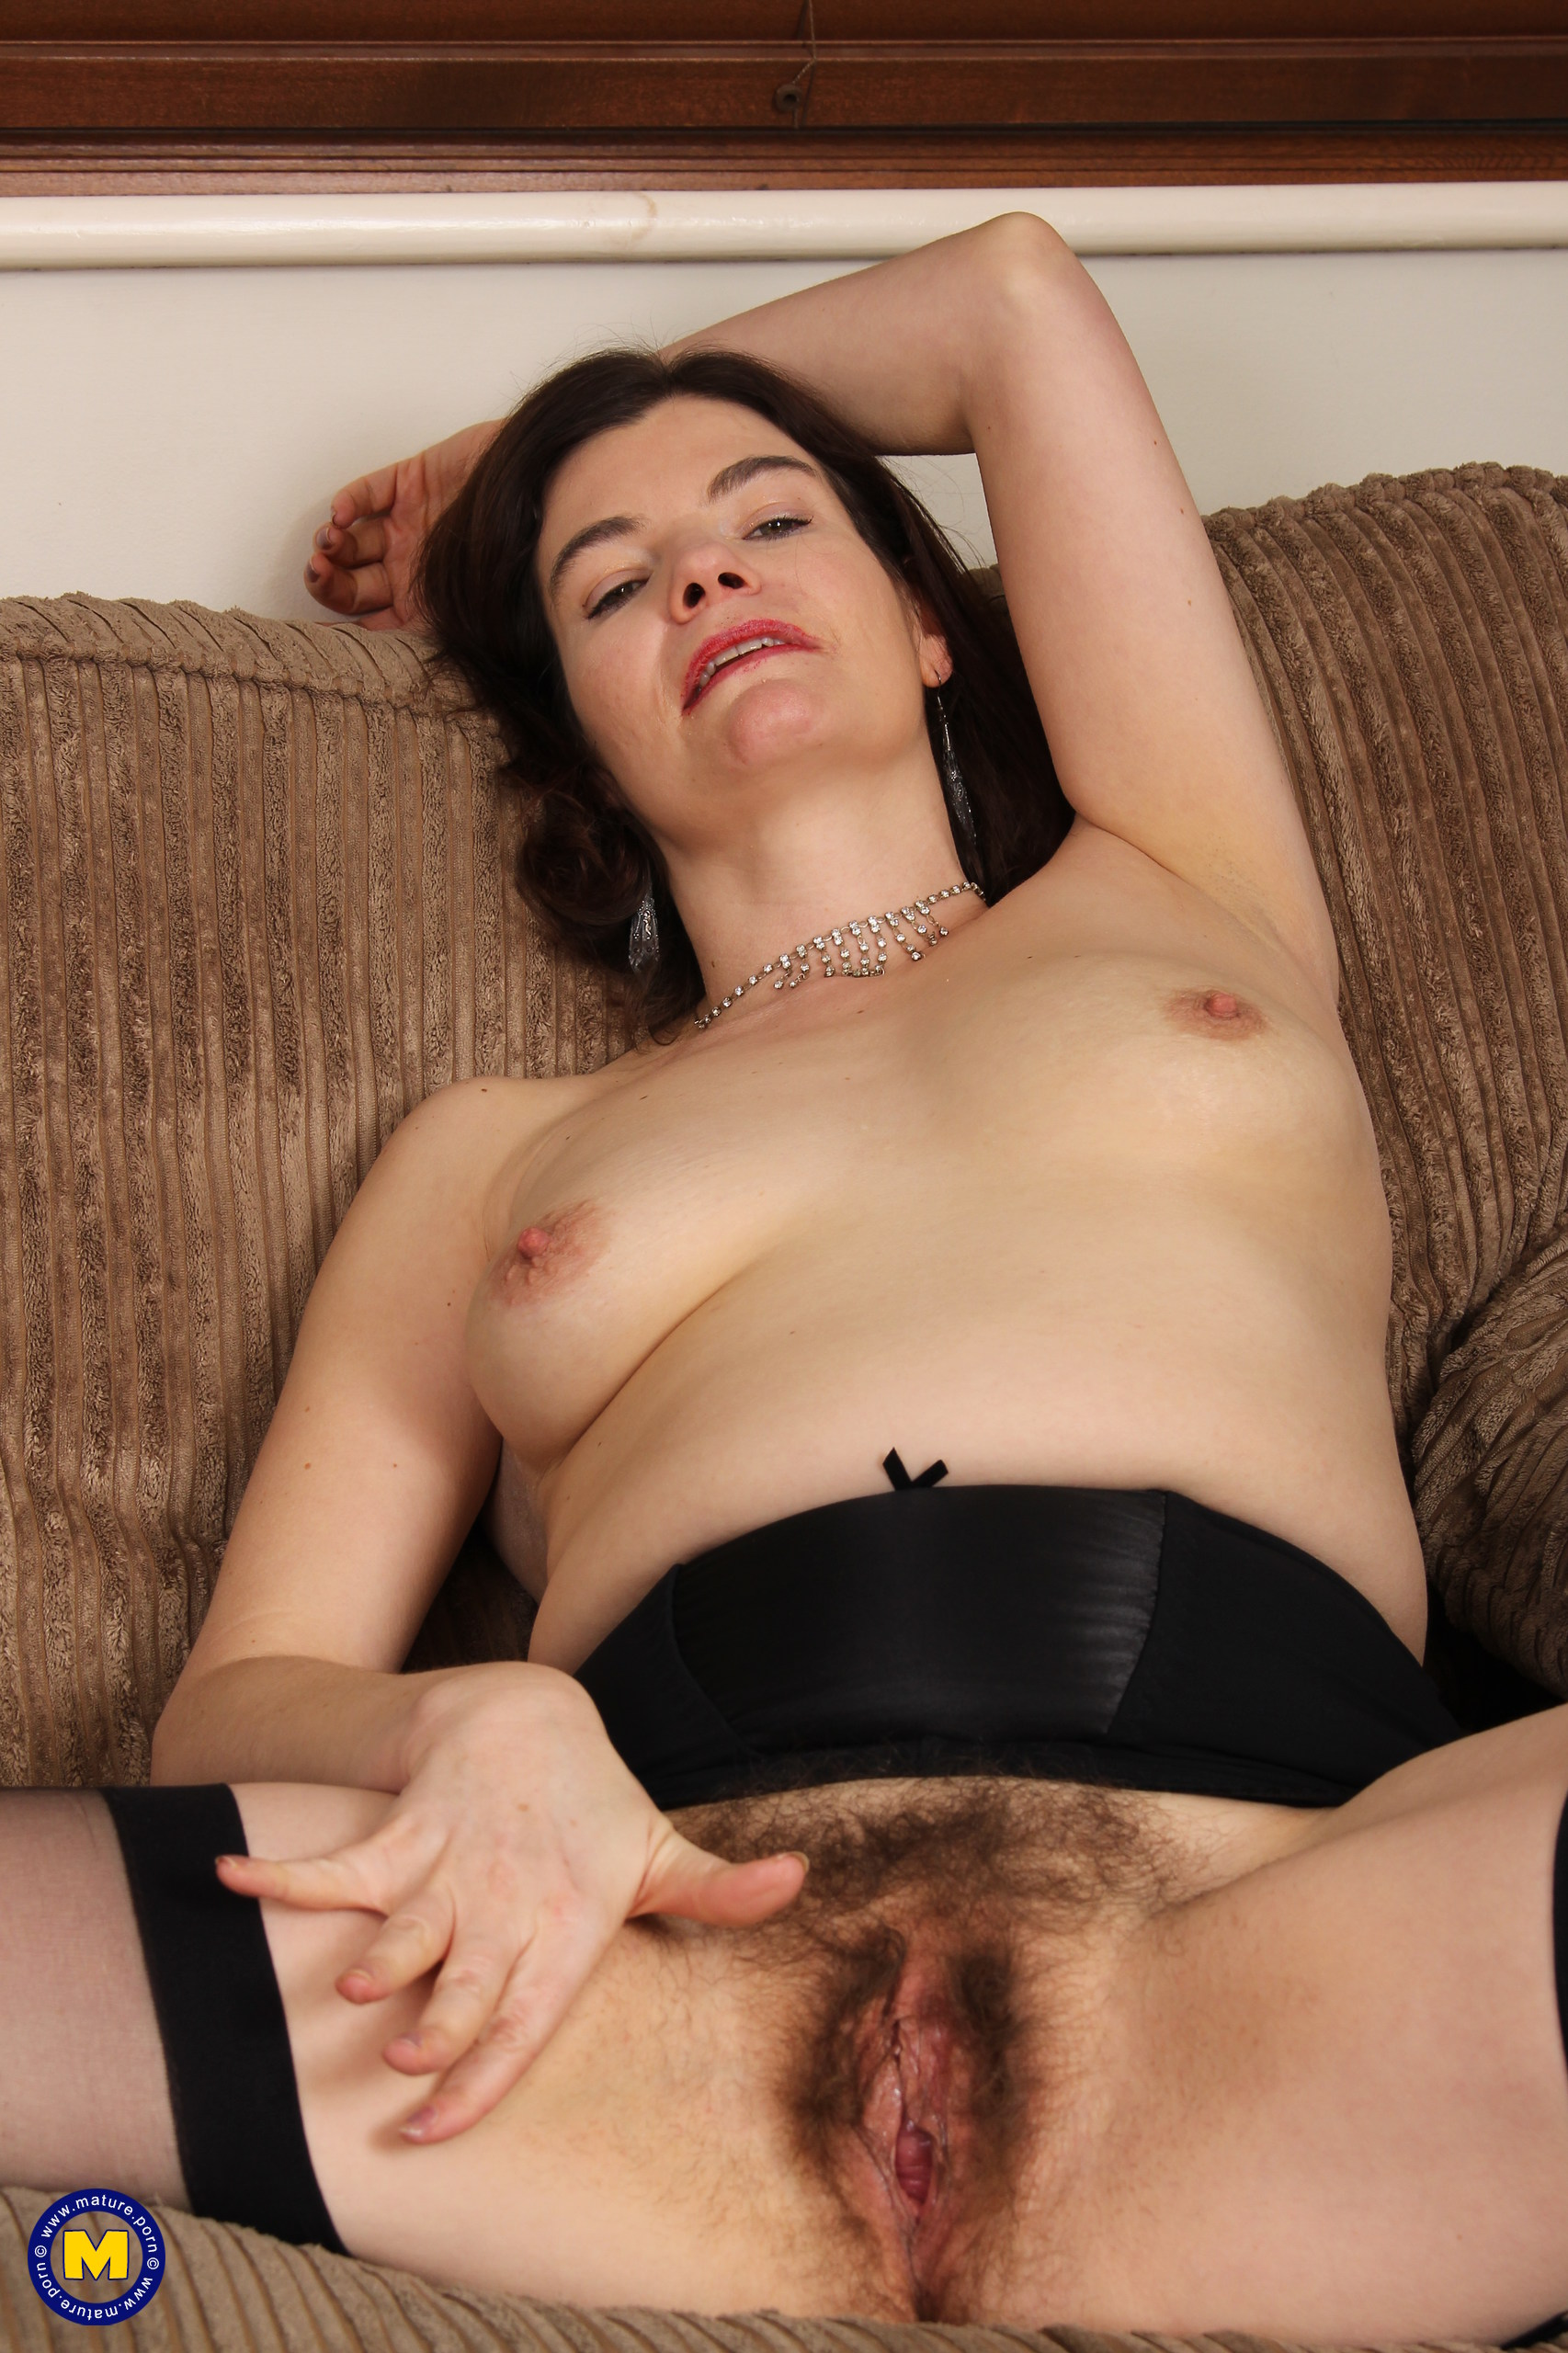 Furry Brit housewife toying with her honeypot